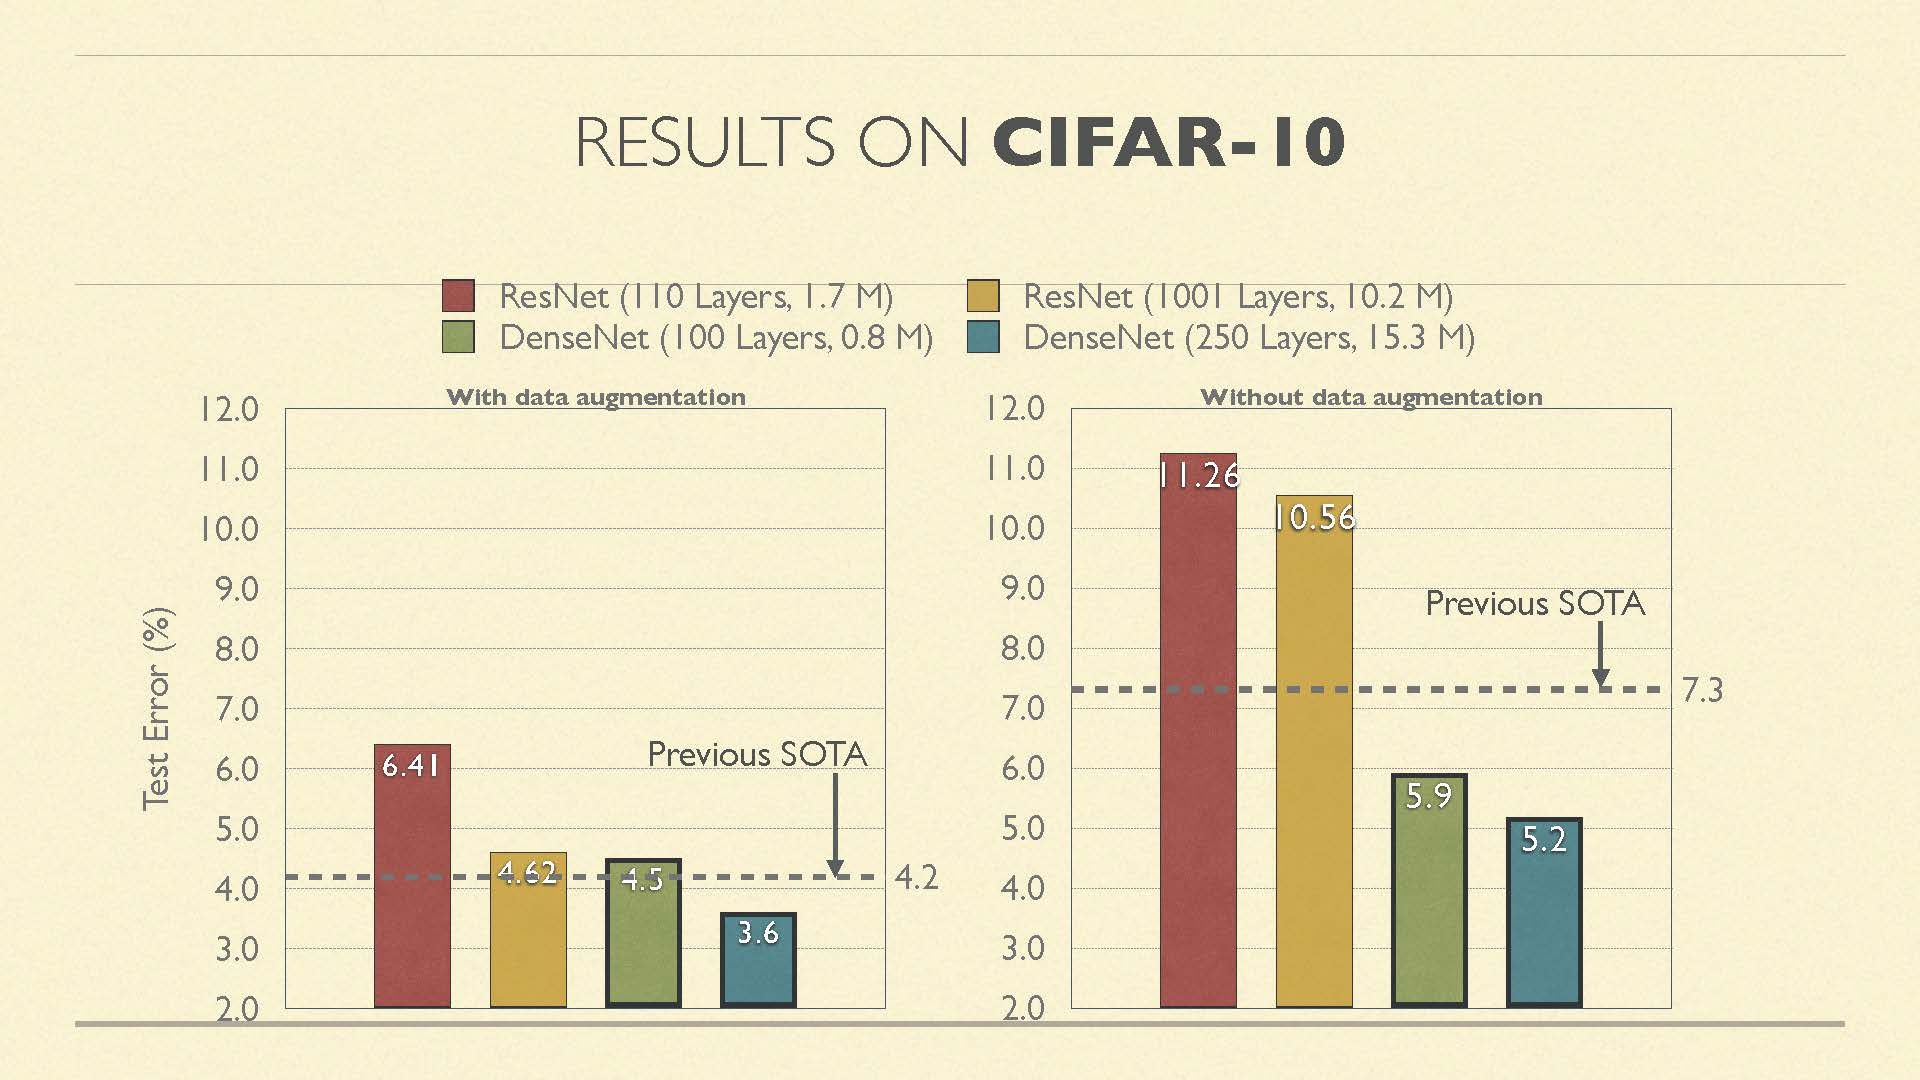 On the popular CIFAR-10 data set, DenseNets with 0.8M parameters outperform ResNet-110 with 1.7M parameters.